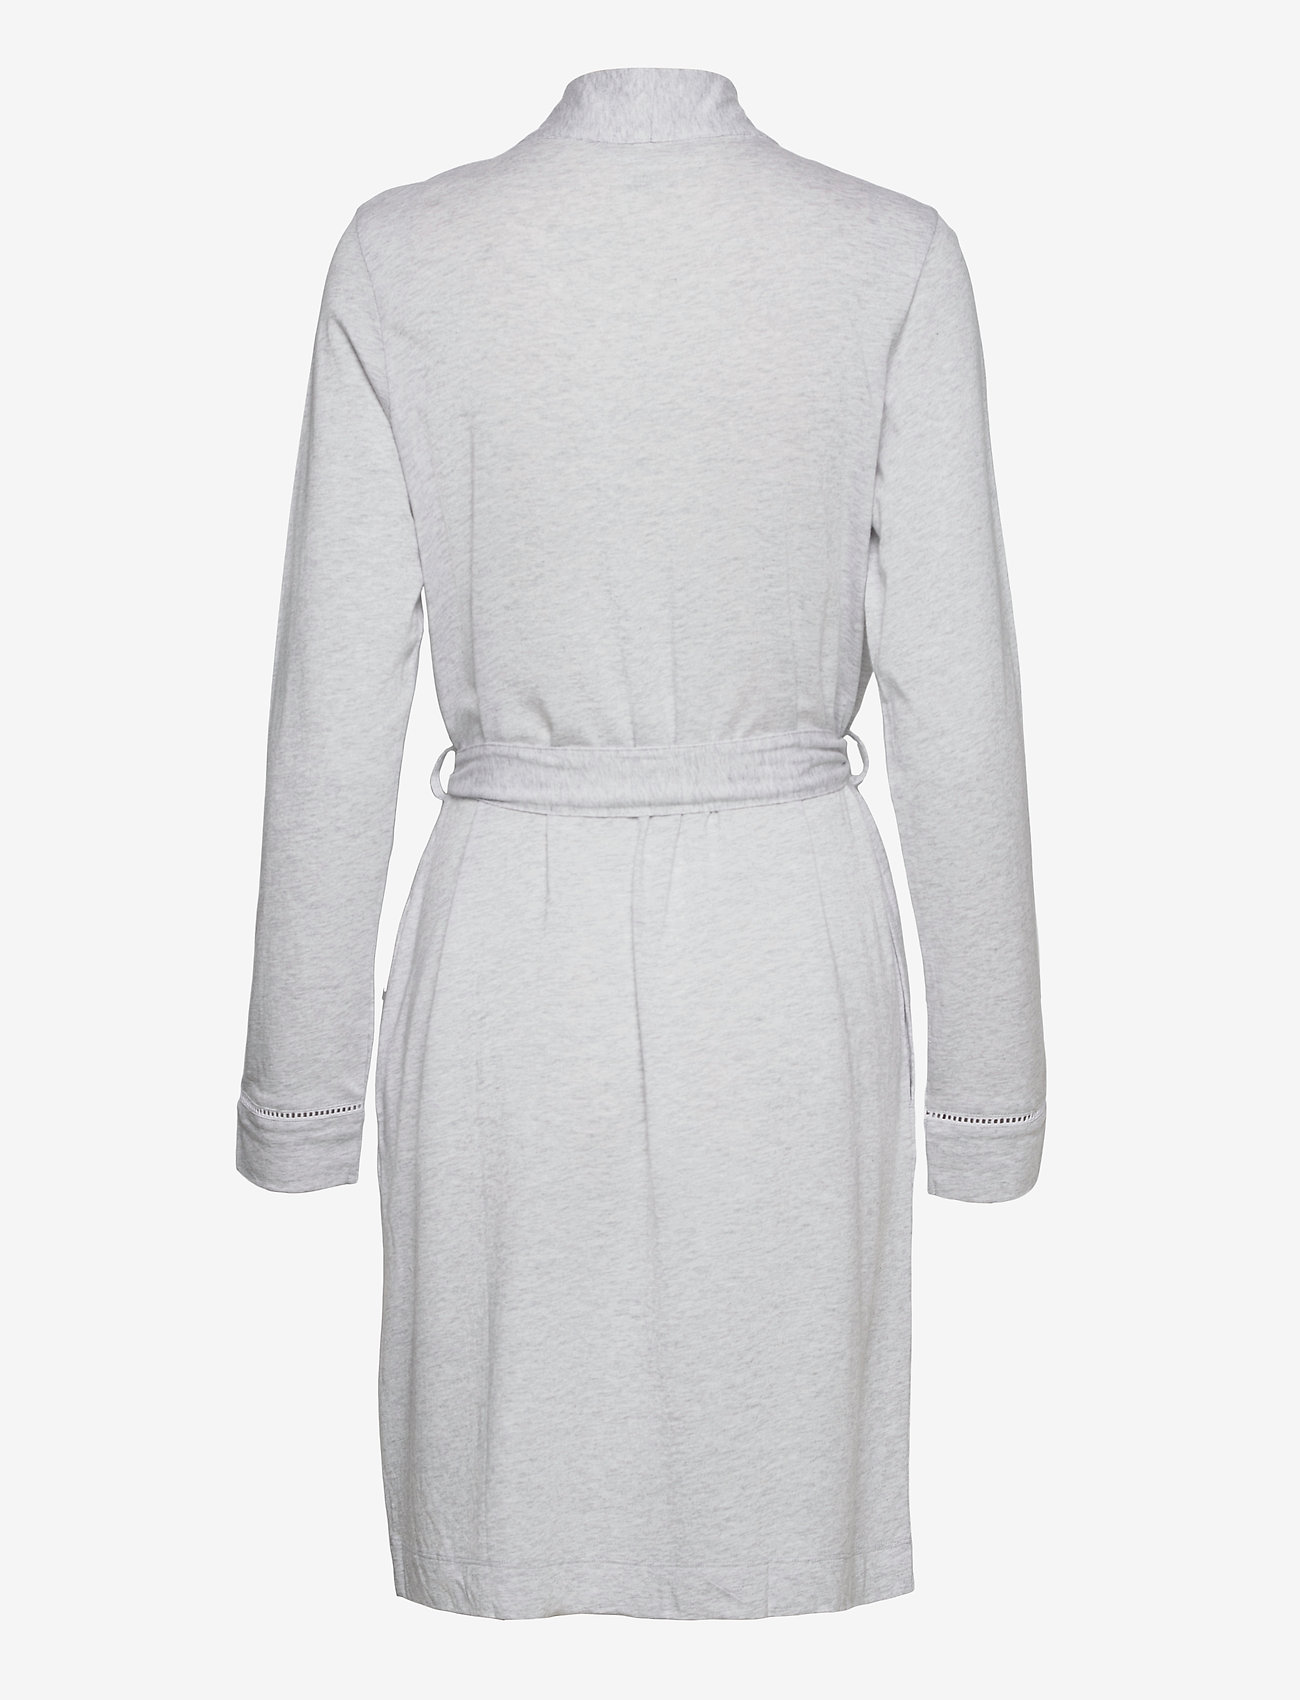 Schiesser - dressing gown - pegnoirs - grey melange - 1